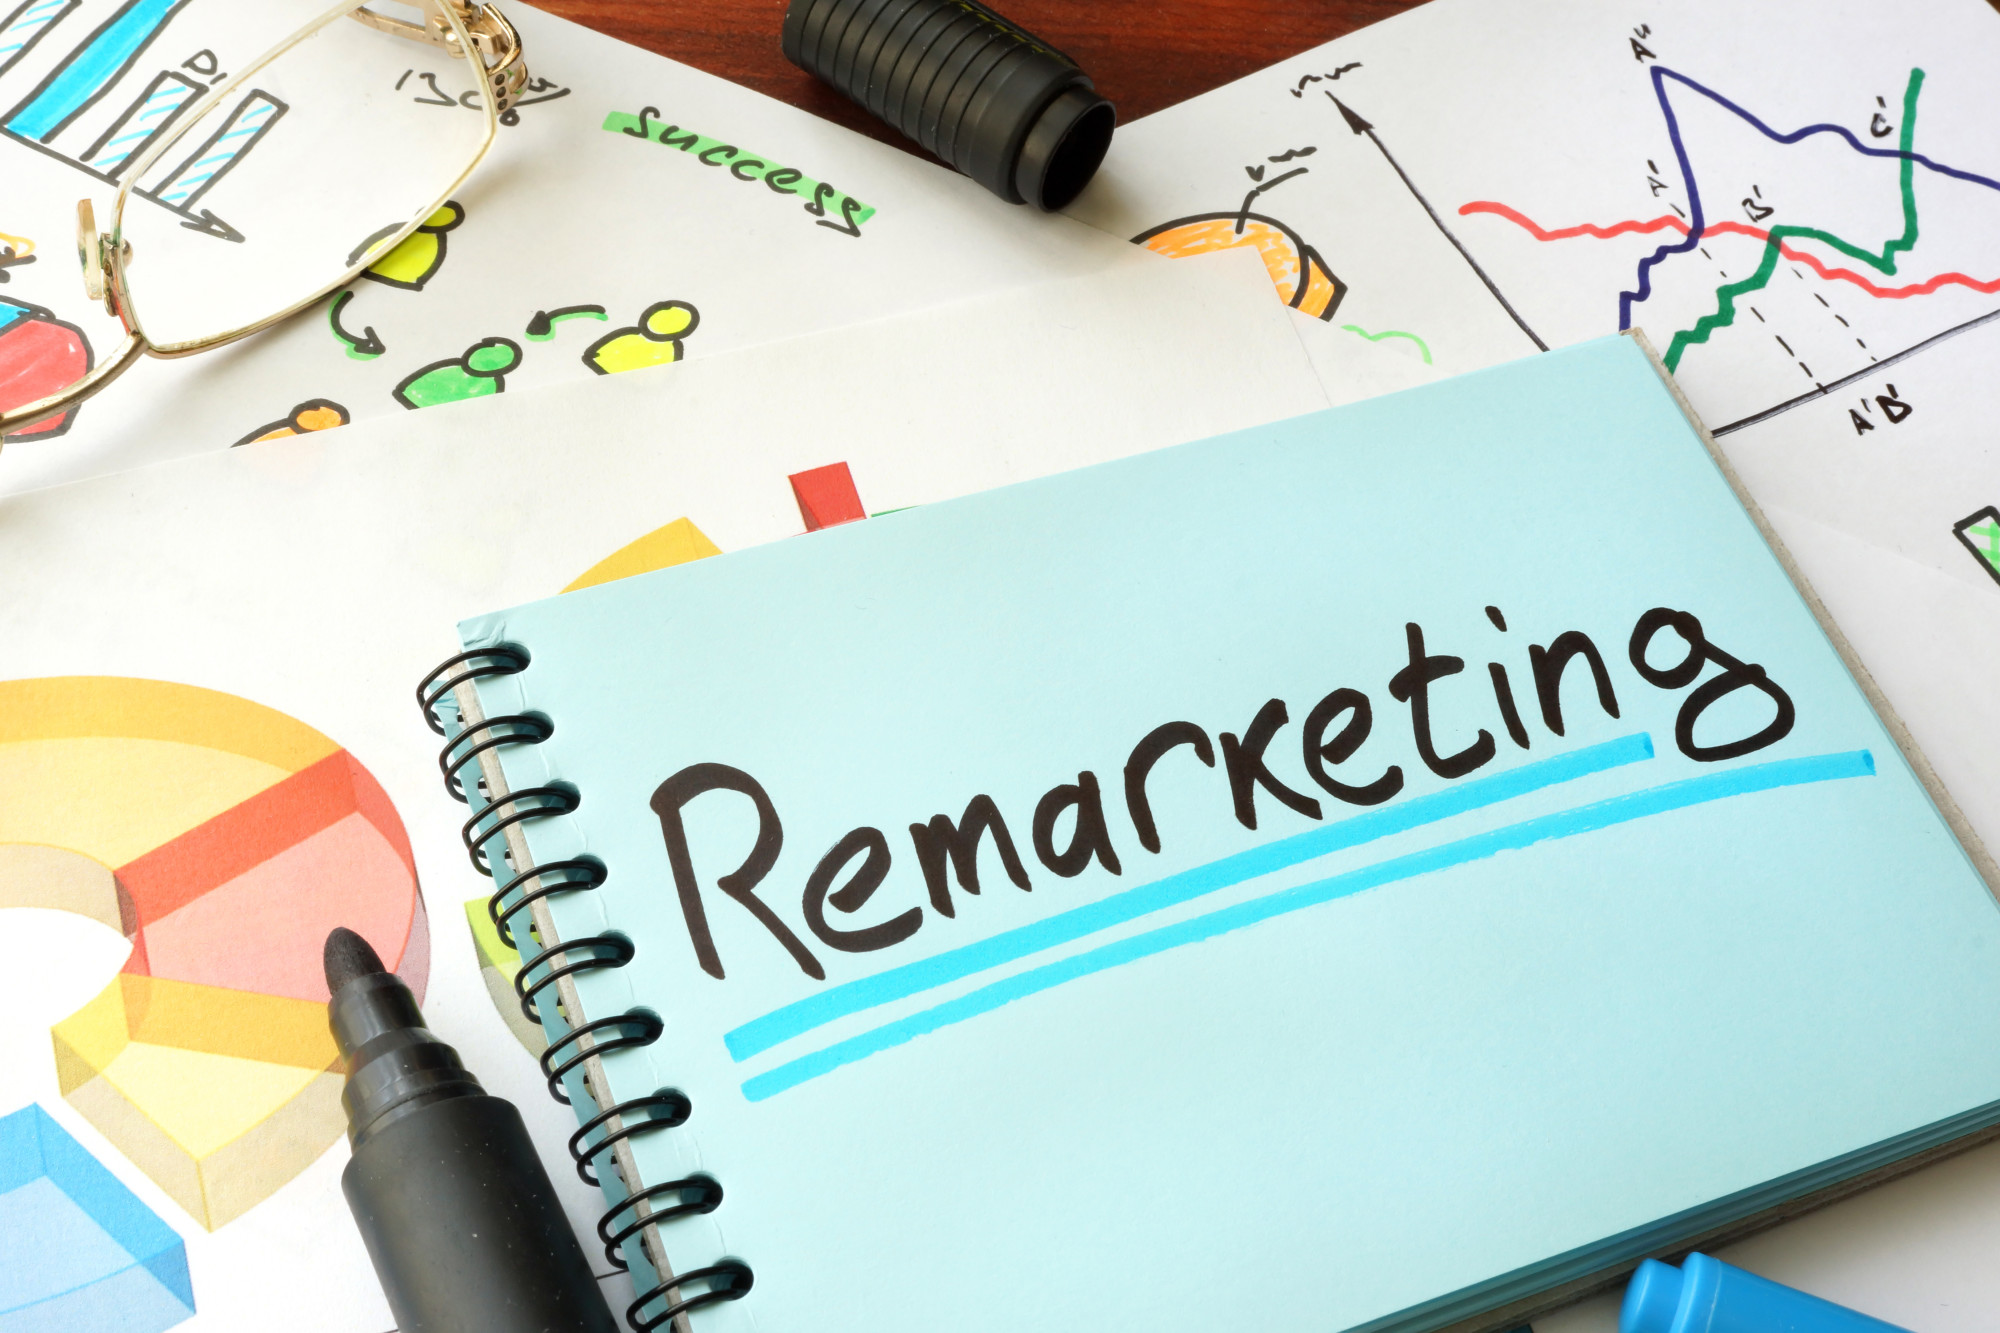 remarketing text on notebook